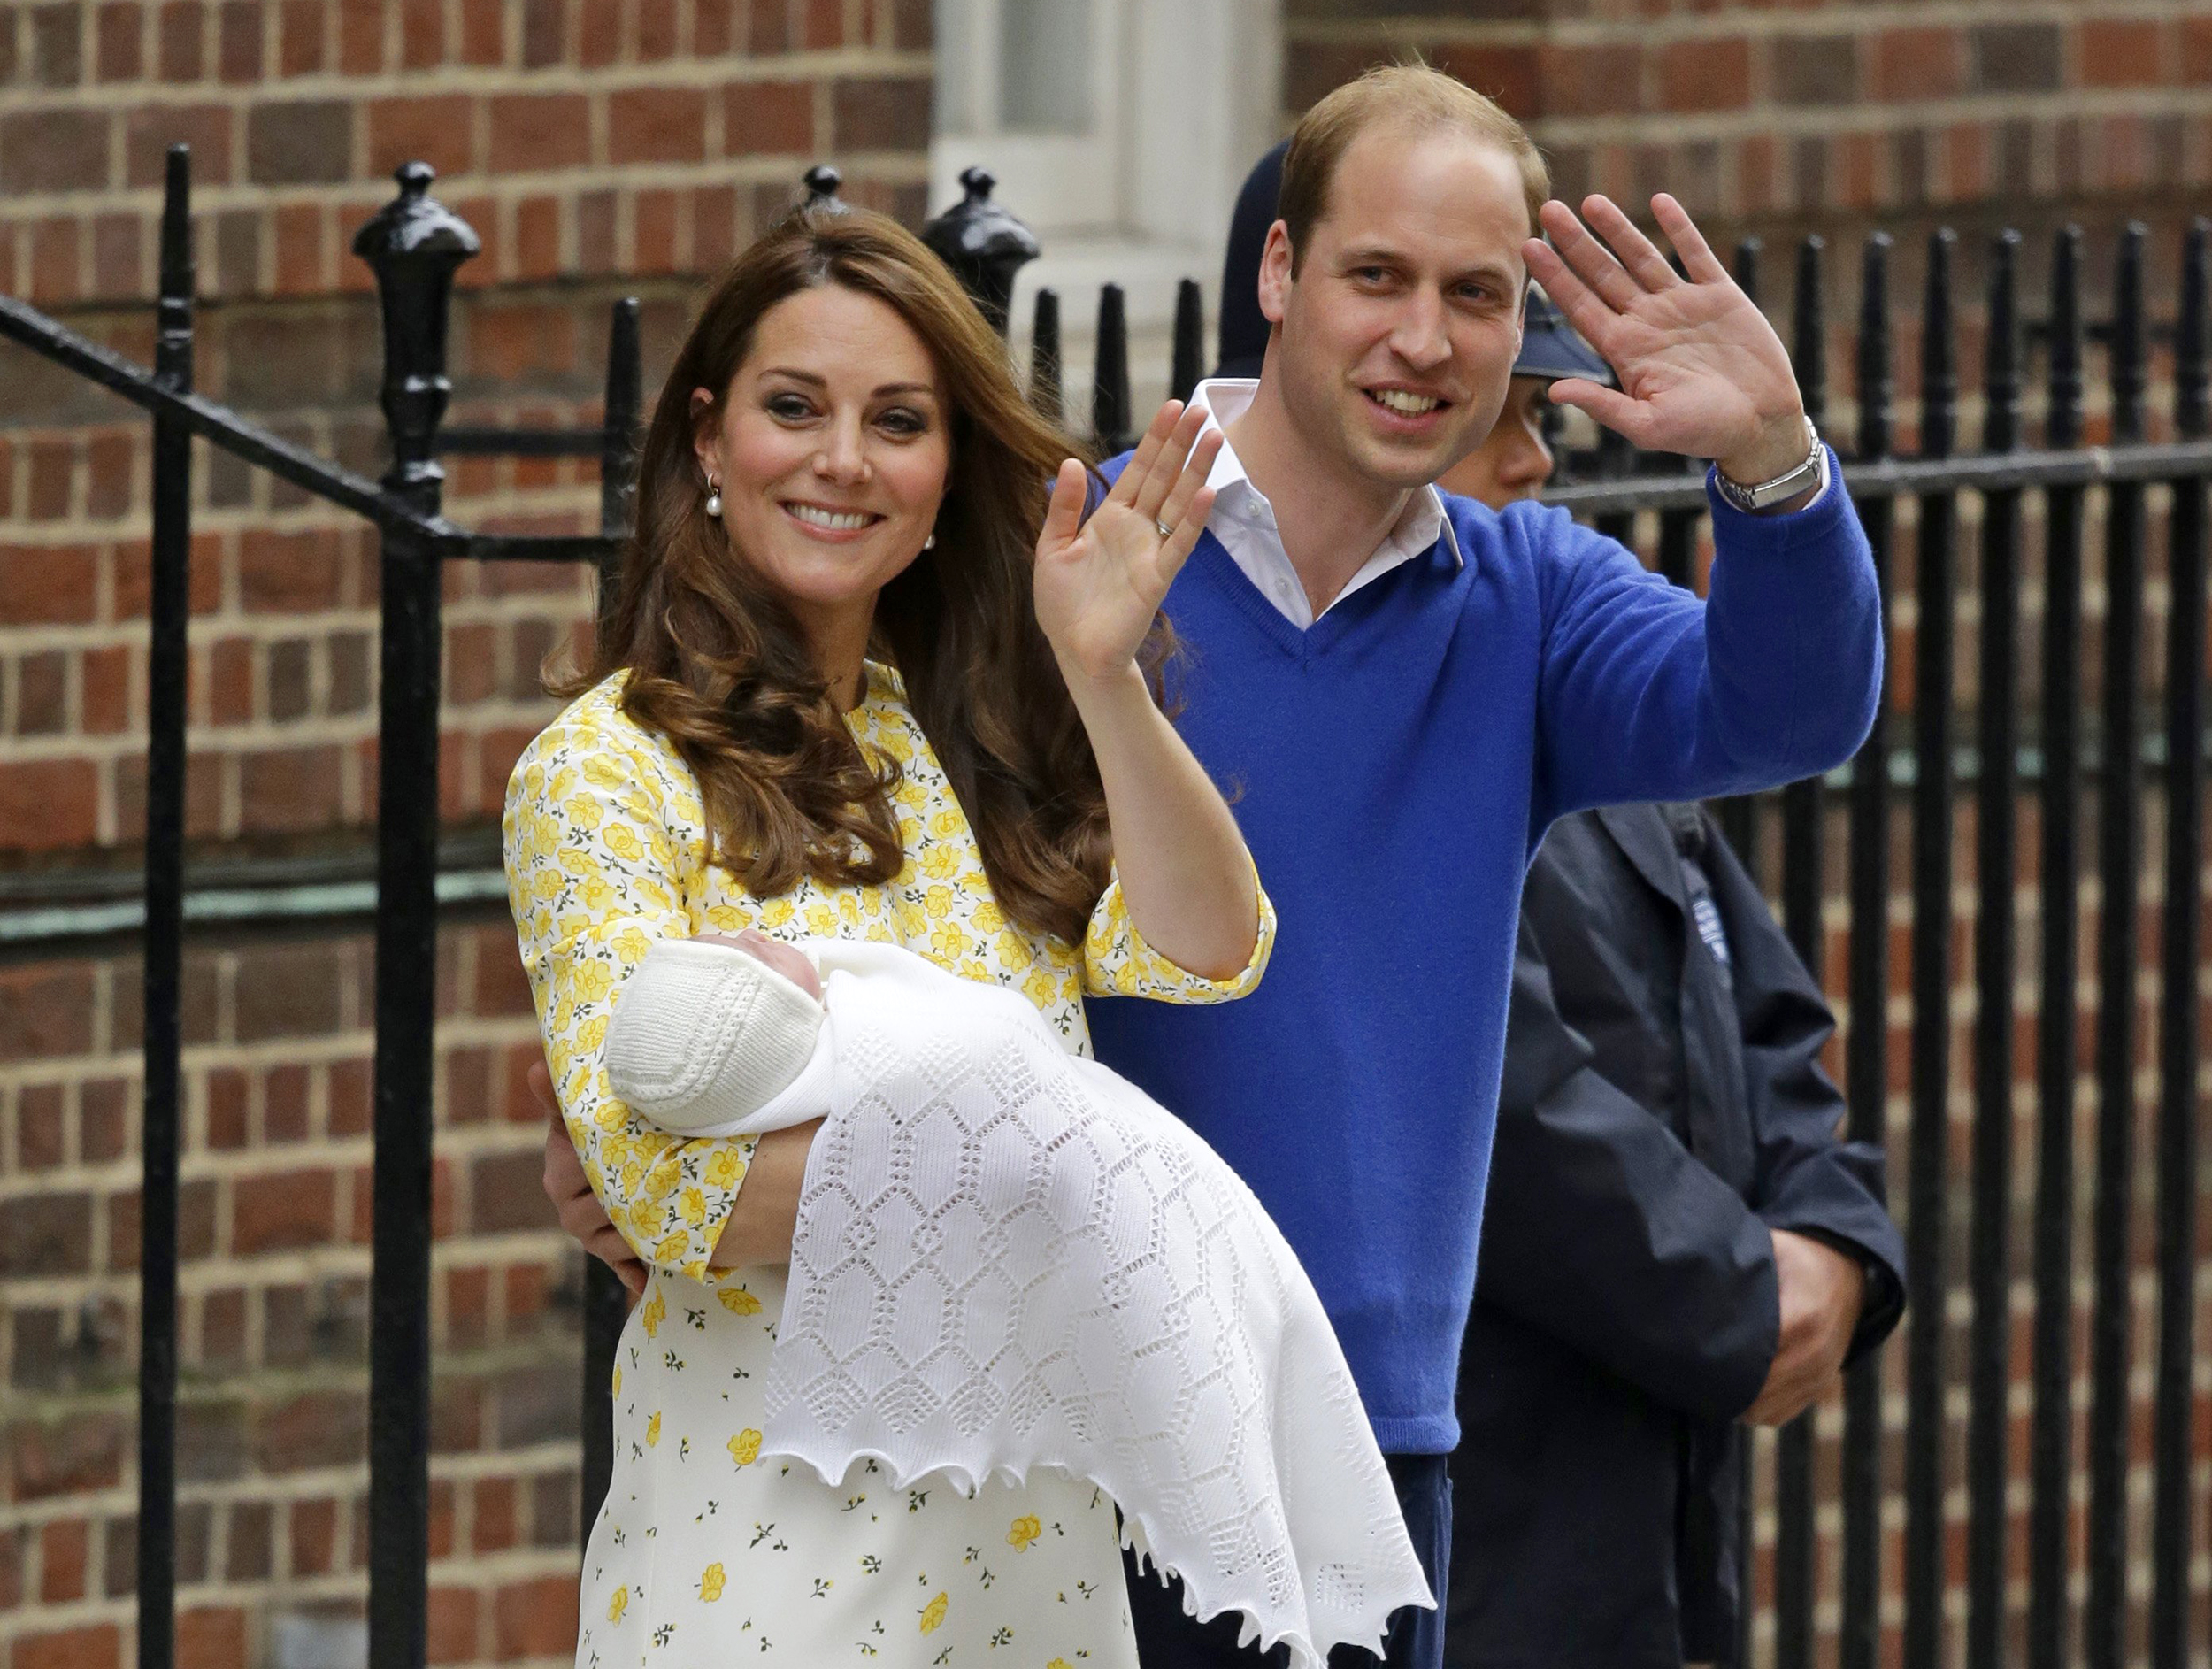 Wiliam and Kate With Baby Daughter Leaving Hospital